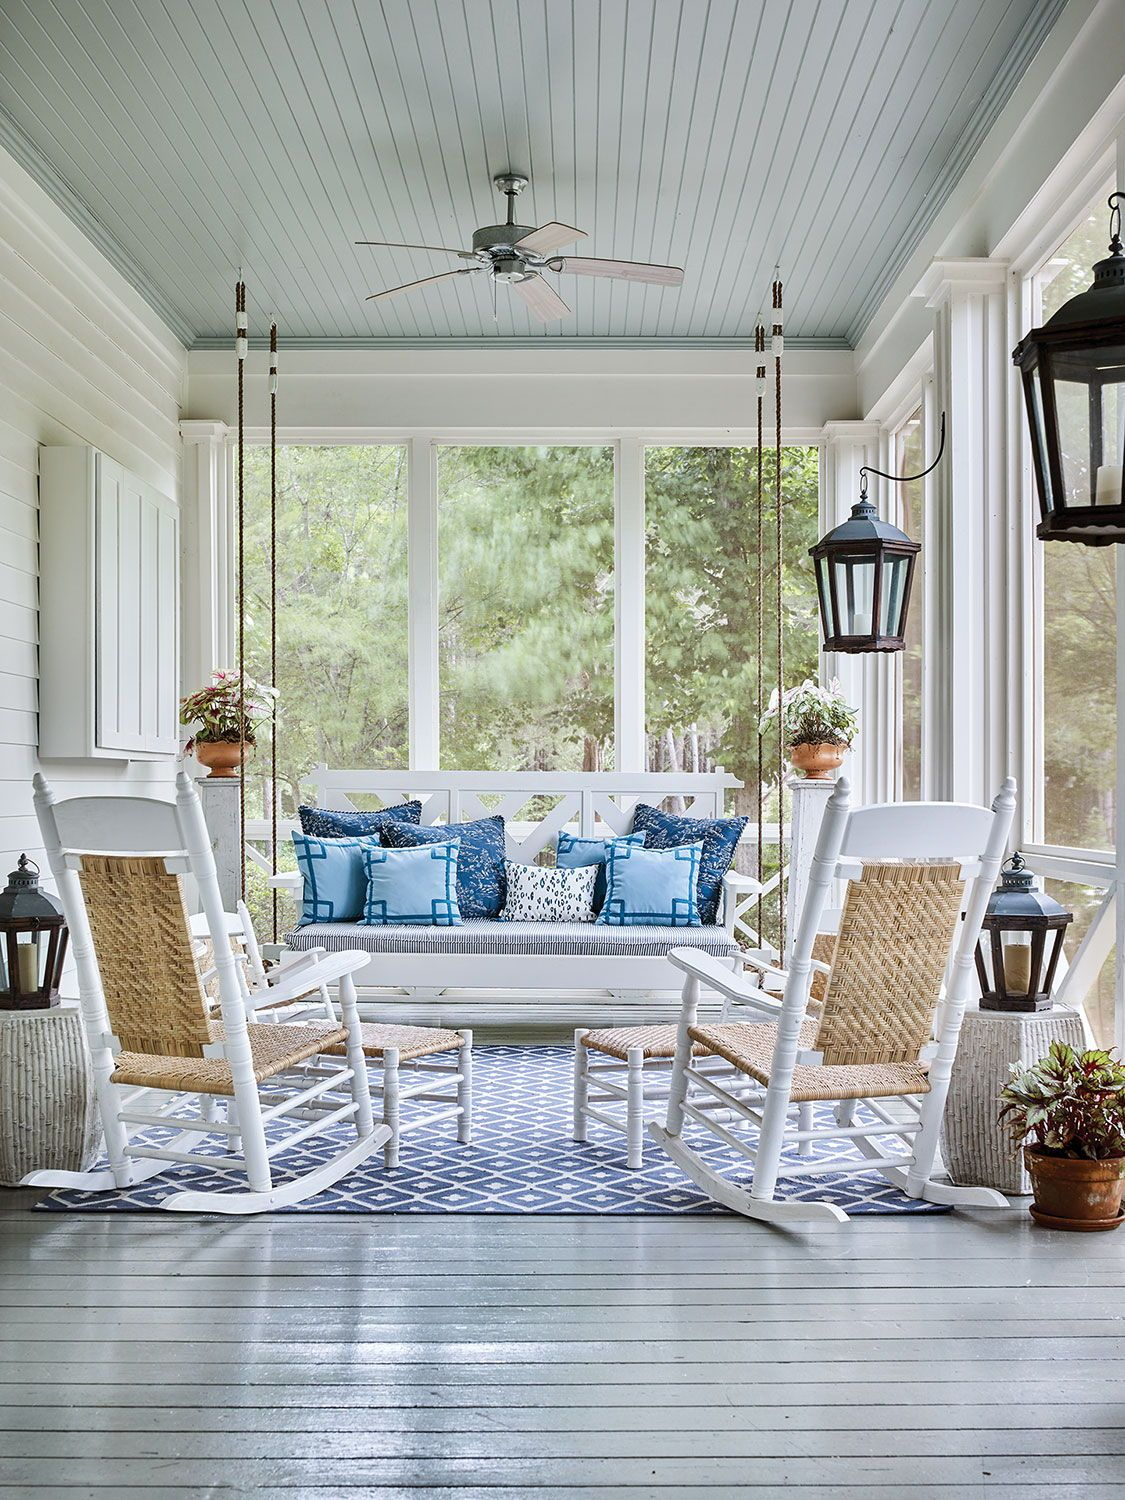 A screened porch epitomizes Southern style with a bed swing made in South Carolina and chairs from Georgia. Designer James Farmer finished the look by layering blue-and-white textiles in an assortment geometric and organic patterns. Photo by Emily Followill